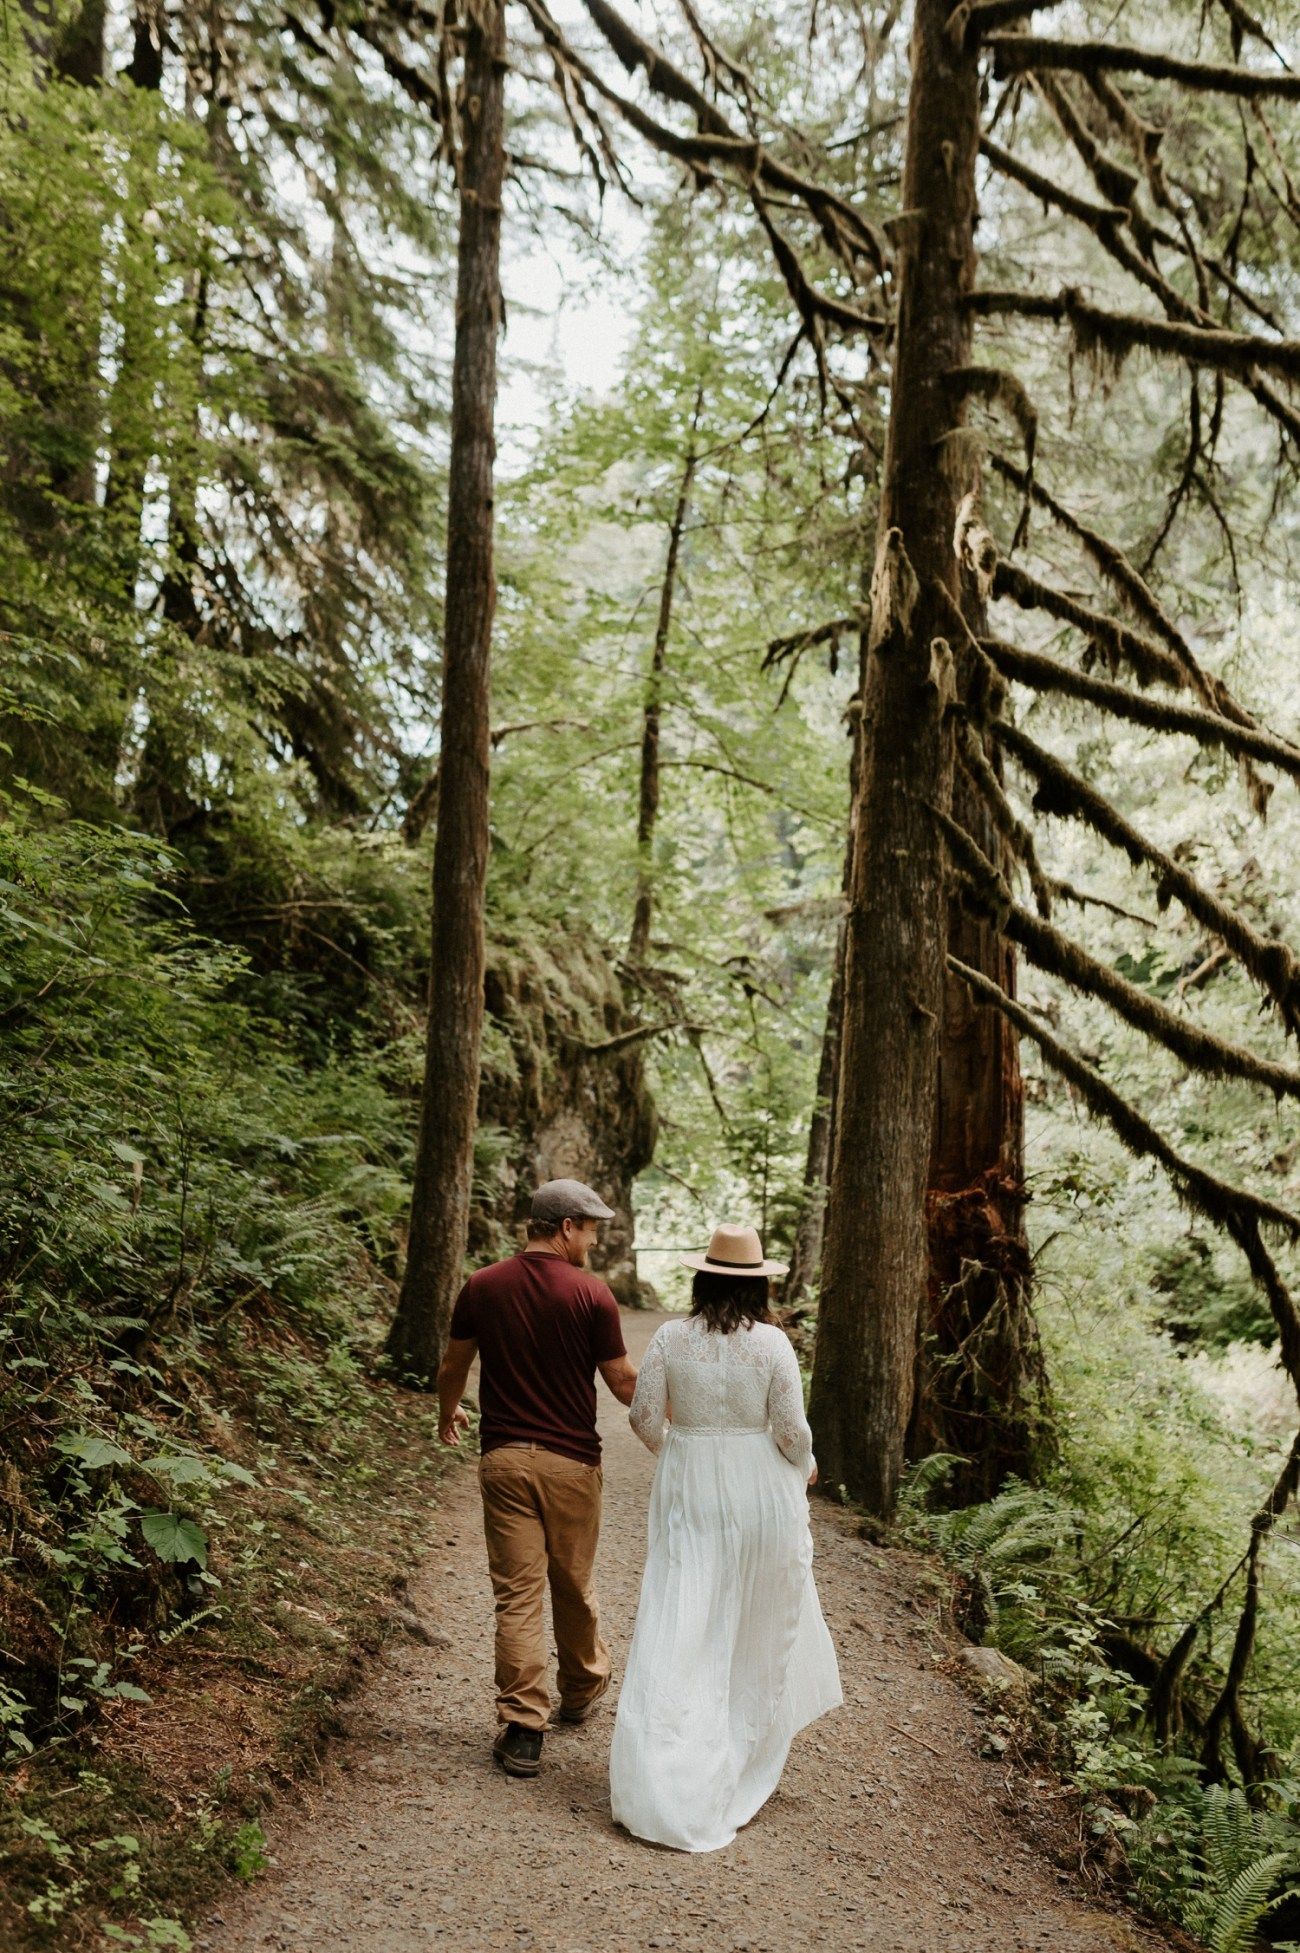 Silver Falls State Park Engagement Session North Falls Engagement Photos Portland Wedding Photographer Oregon Elopement Photographer Anais Possamai Photography 002